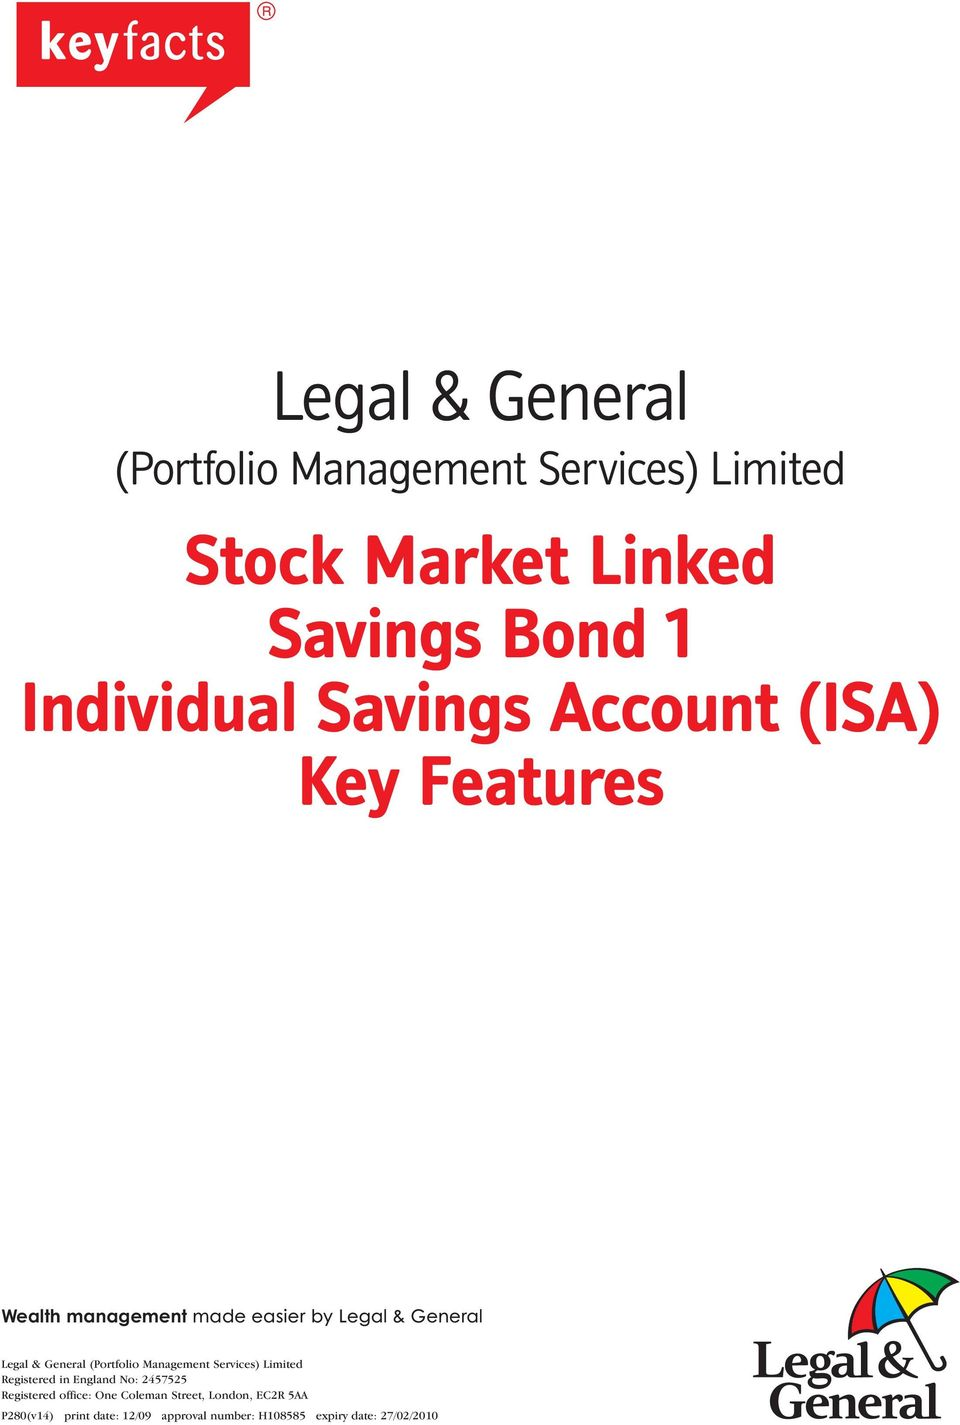 (Portfolio Management Services) Limited Registered in England No: 2457525 Registered office: One